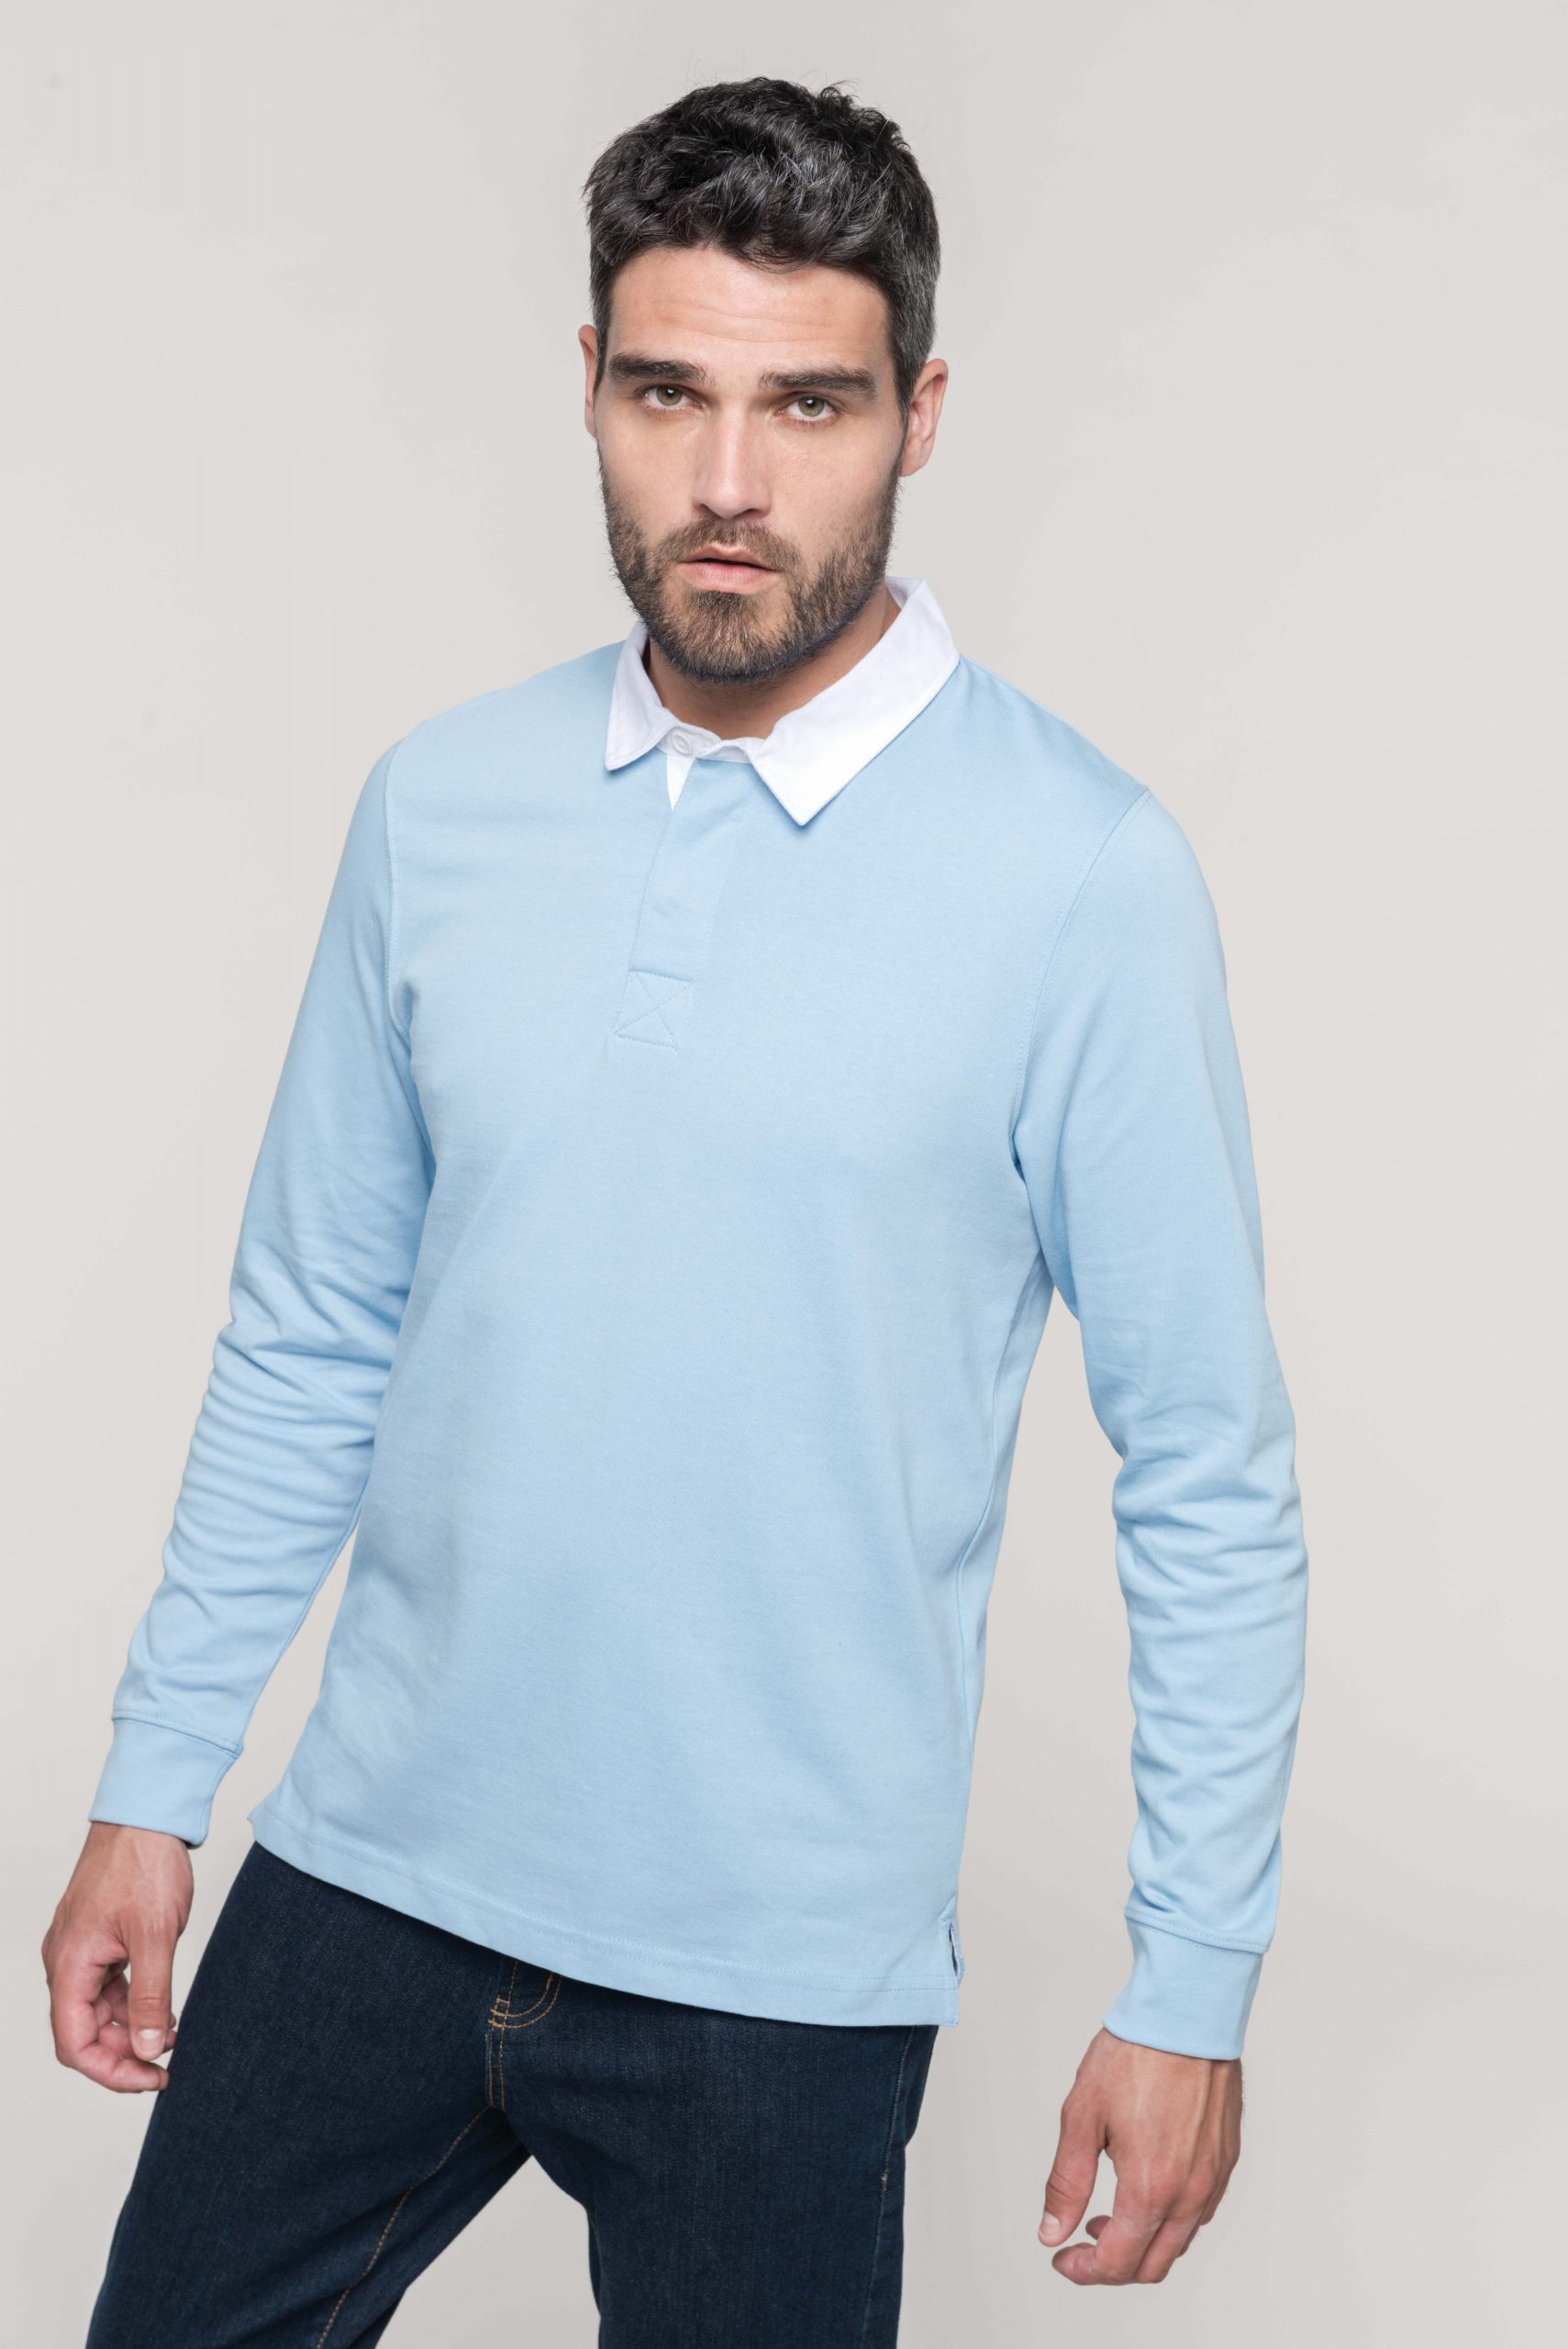 Rugby Polo Shirt Men